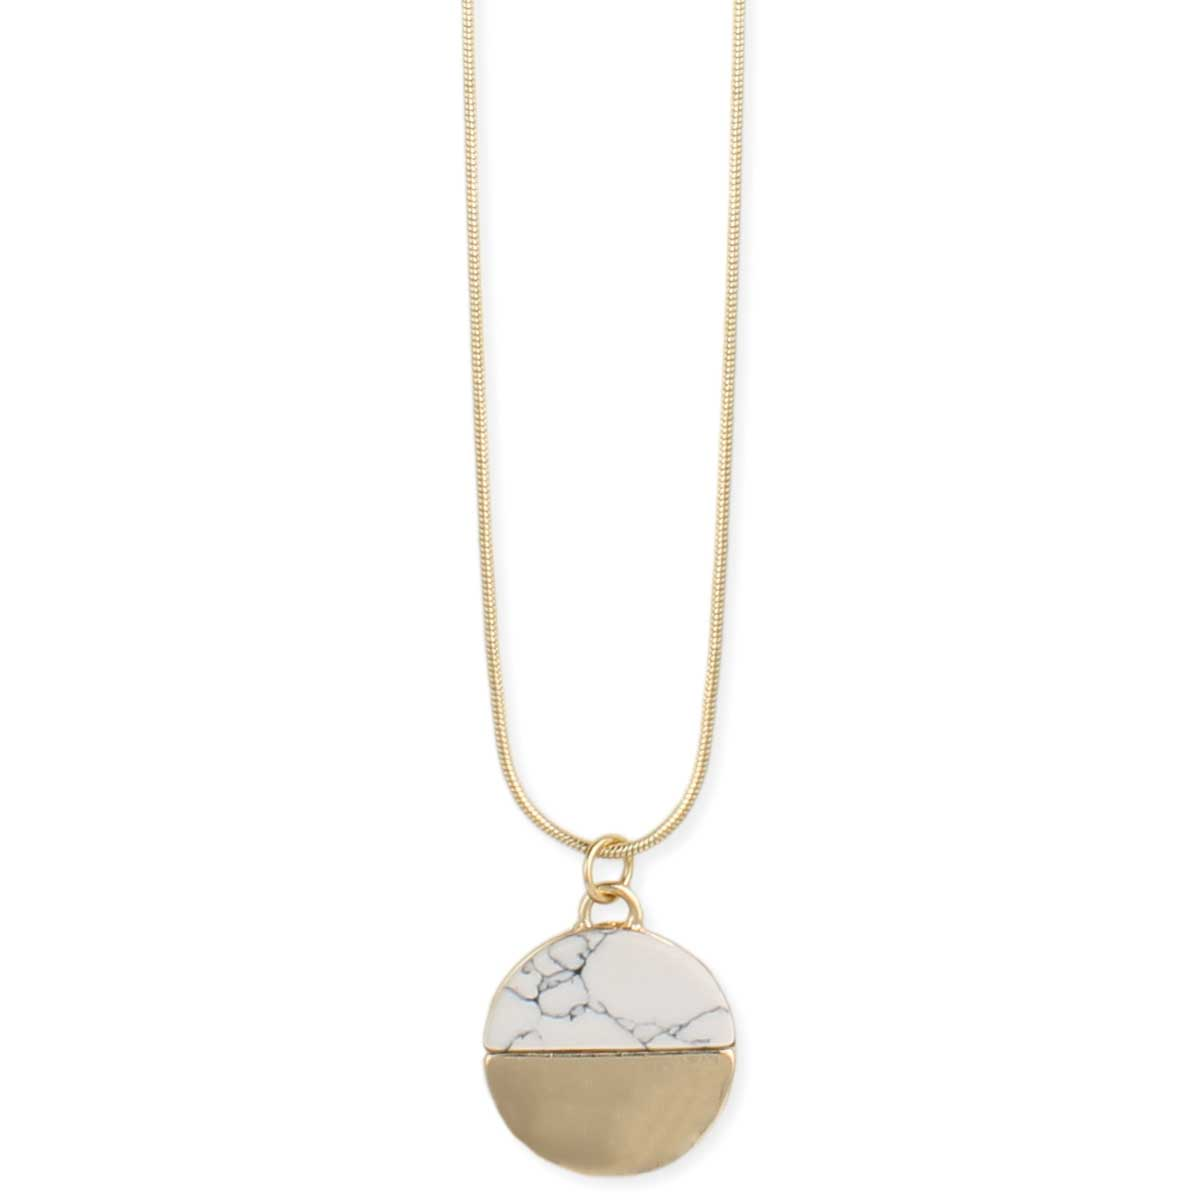 Round gold white howlite pendant necklace round gold white howlite pendant necklace view detailed images 2 aloadofball Images